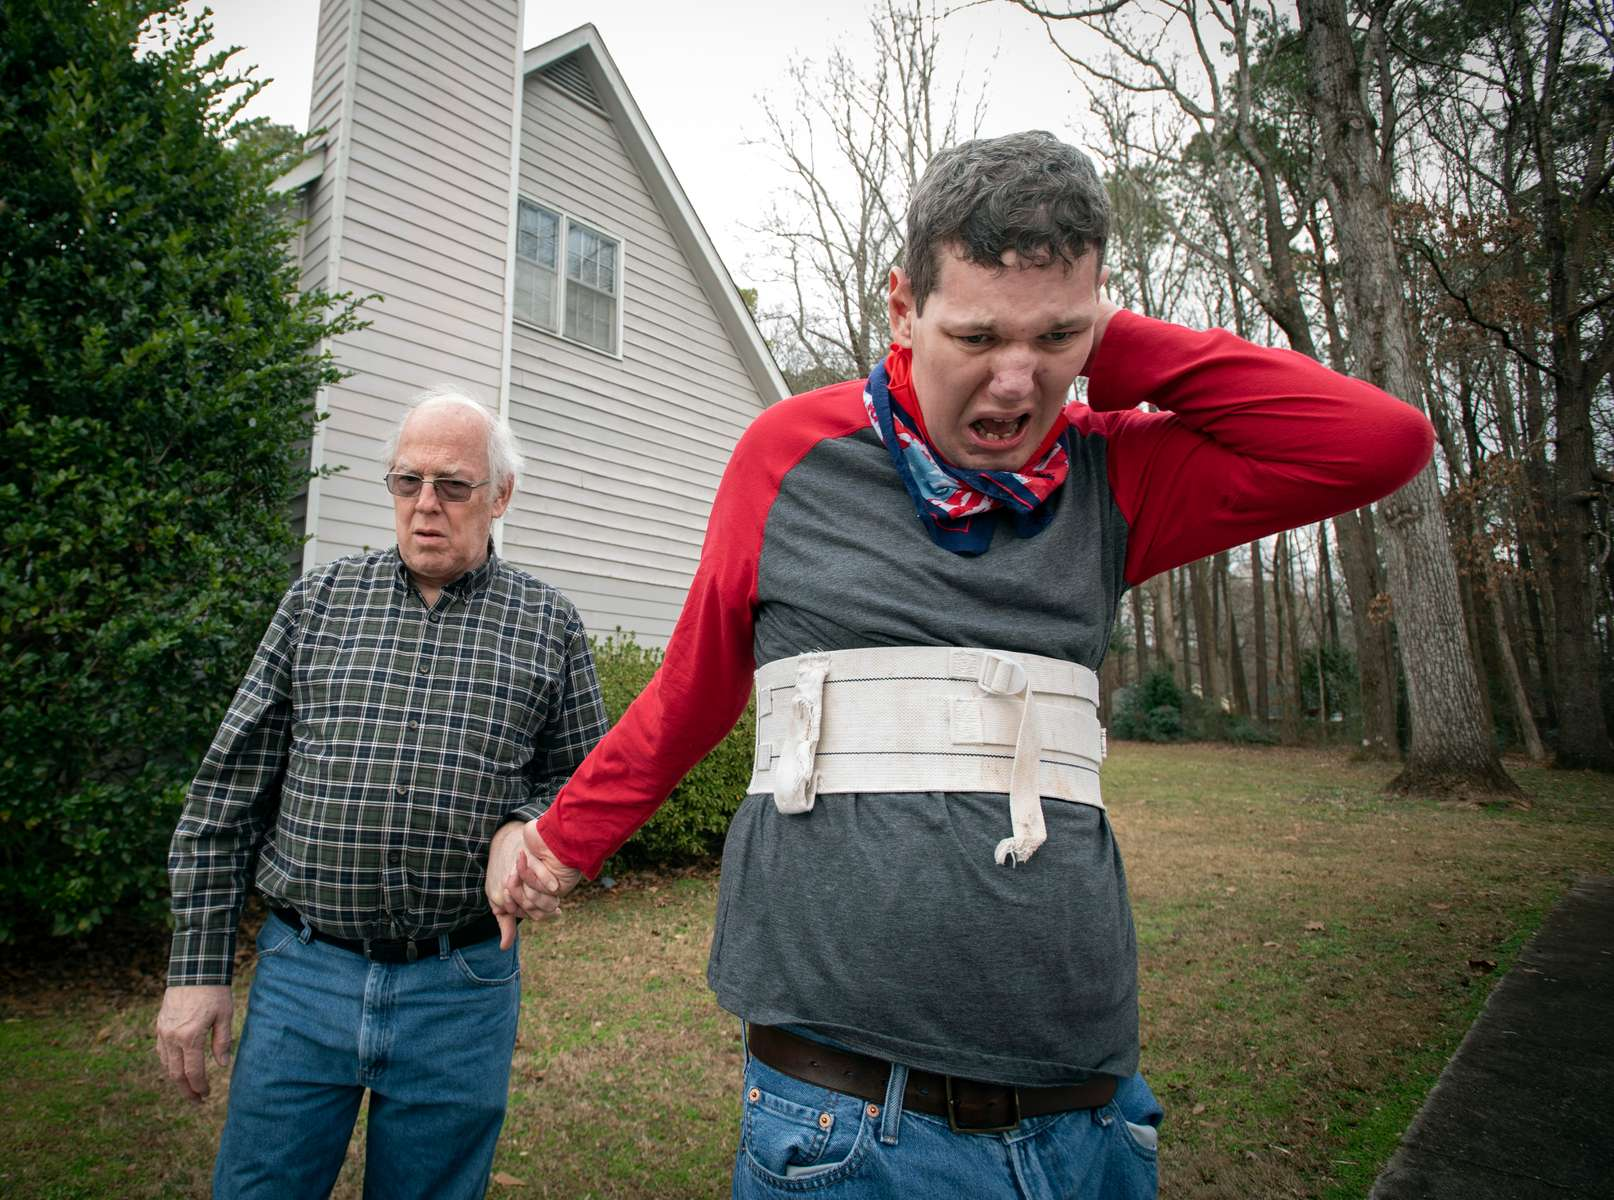 "Mike McBroom escorts his disabled son for a walk outside the family home. Mike and his wife Sheila often lie awake at night, filled with anxiety about Tim's future. Tim, 36, who is non-verbal and experiences severe autism, has seizures and behavioral issues. McBroom and his wife are doing their best to provide their son with a safe and secure environment in their Jonesboro home, with daily help from Medicaid waiver-funded support staff. But proposed cutbacks to those Medicaid-funded services turn their son's life upside down. Georgia's disability officials are currently wrestling with likely budget cuts that will dramatically impact their son, and 187 others in the state with profound intellectual disabilities who need extensive daily support to remain at home.The state's proposed cutbacks affect 187 individuals like Tim who need more than 16 hours a day of support that allows them to remain at home, integrate into their communities, and enjoy some degree of independence, Mike McBroom explained.  ""Under proposed changes to the waiver, Tim will no longer qualify for the person-centered care he needs to remain here,"" he said.  ""State officials said they have identified the needed numbers of beds in various locations around the state -- and all of them are in group homes."""